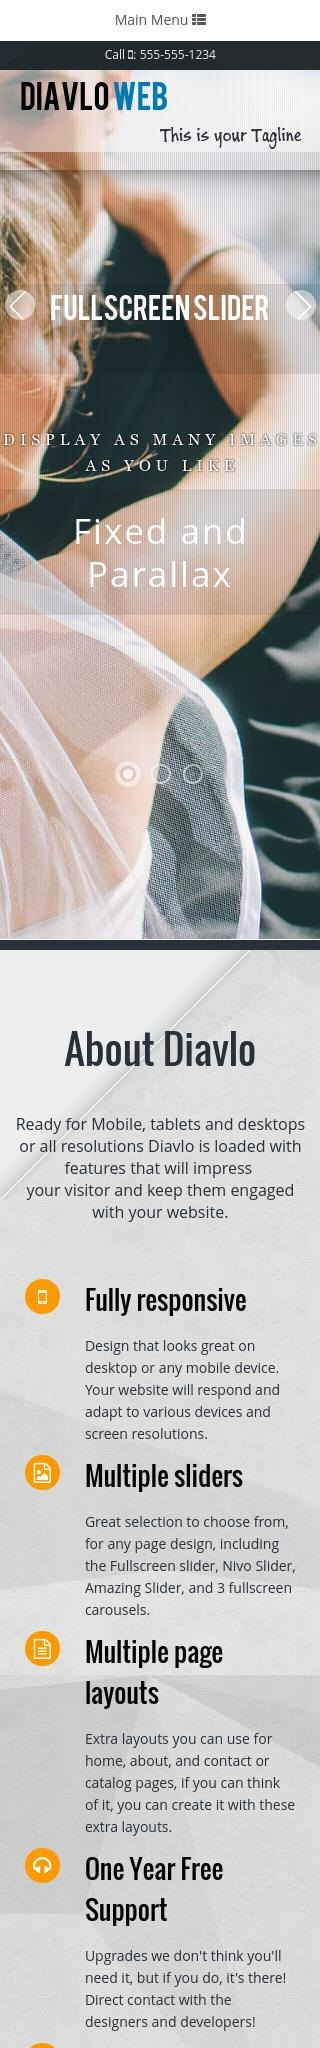 Mobile: Wedding Dreamweaver Template